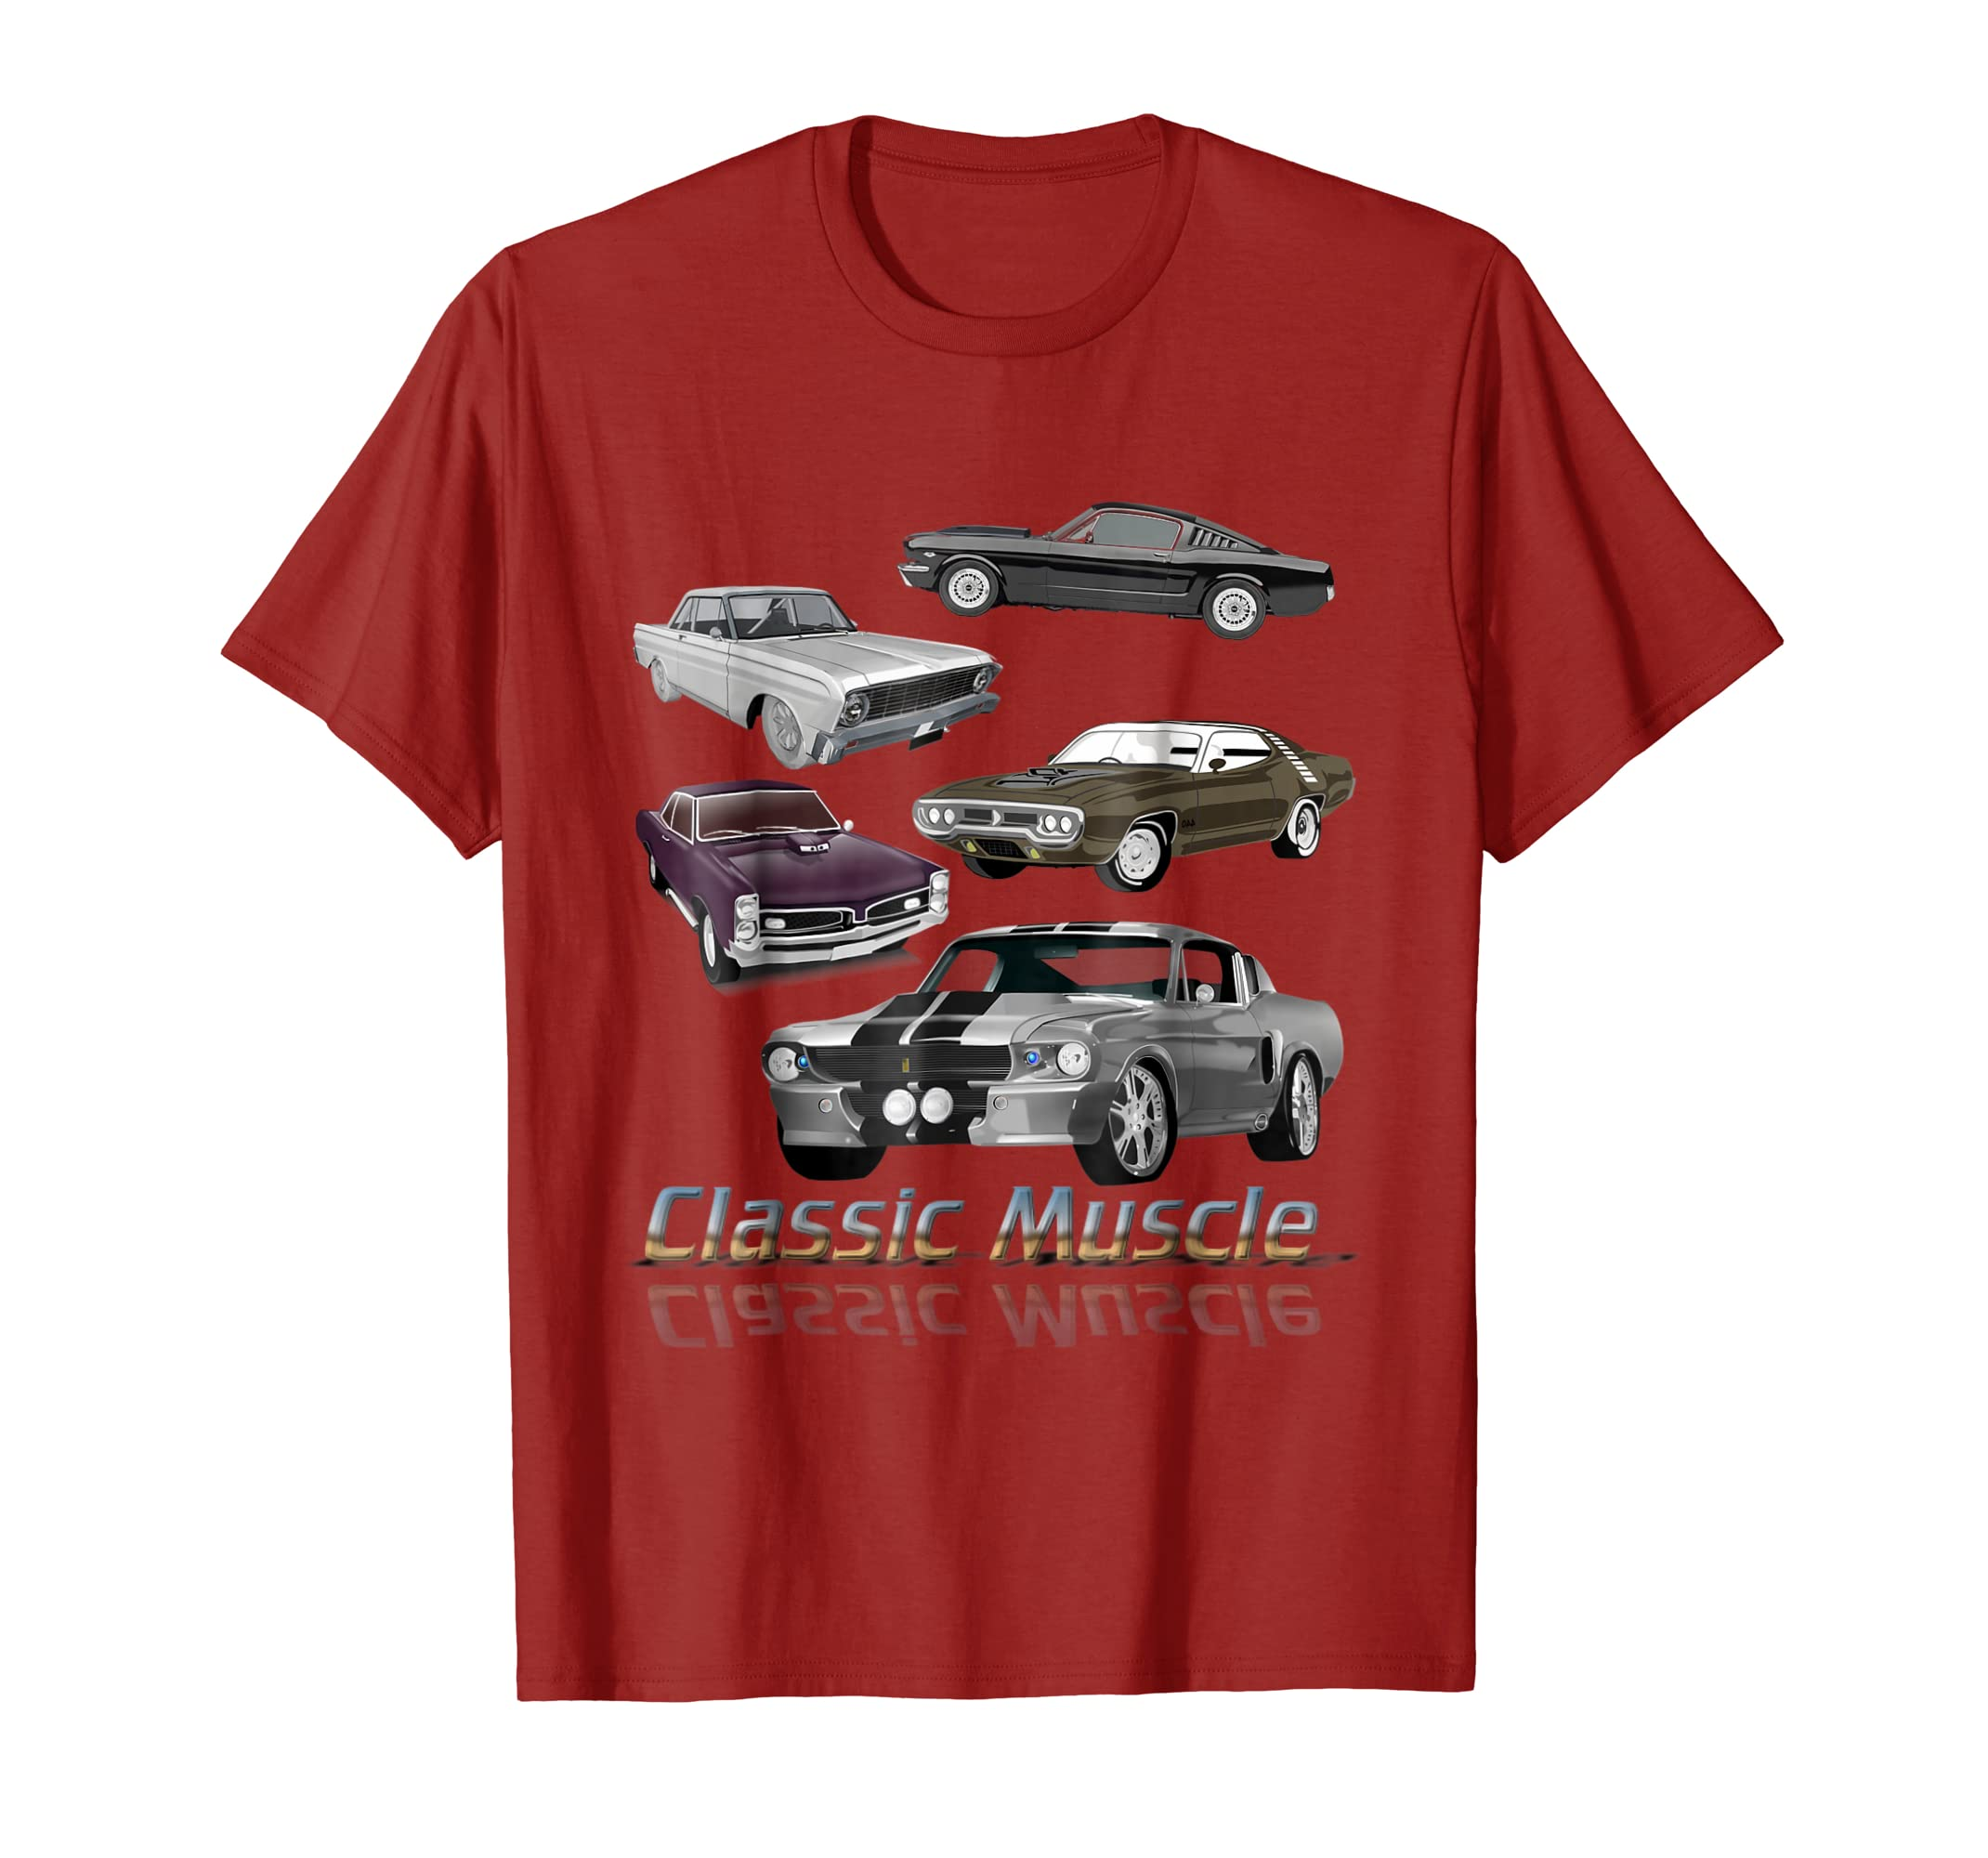 ada6912a Classic American Muscle Cars Vintage Gift T shirt-Colonhue – Colonhue.com